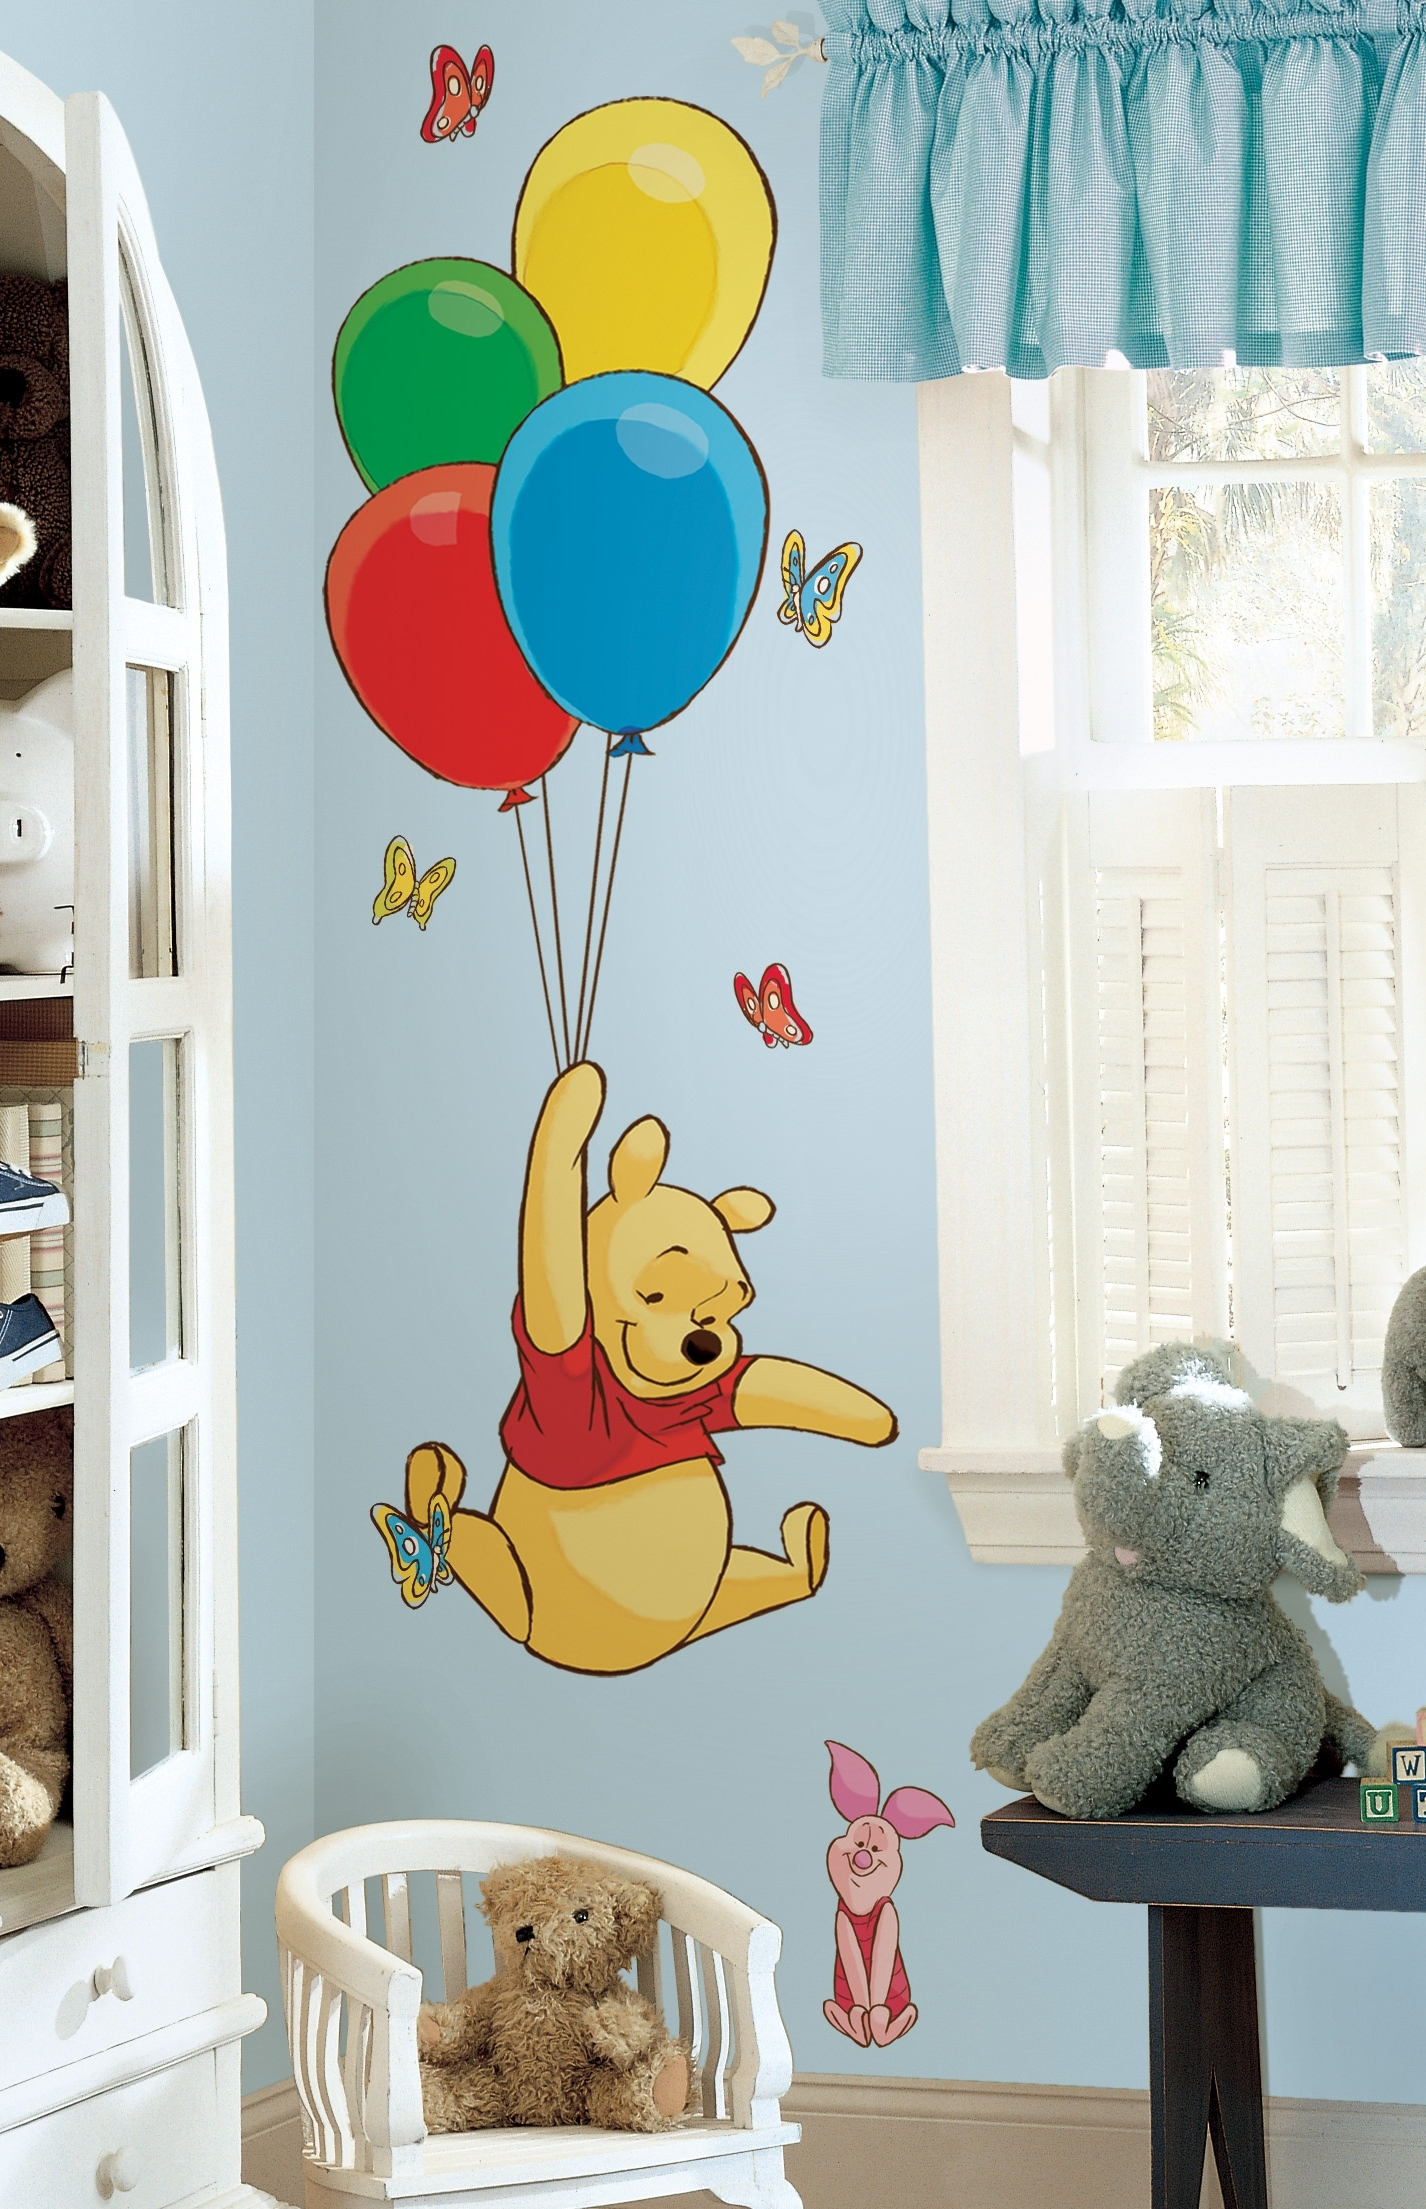 15 ideas of winnie the pooh wall art. Black Bedroom Furniture Sets. Home Design Ideas